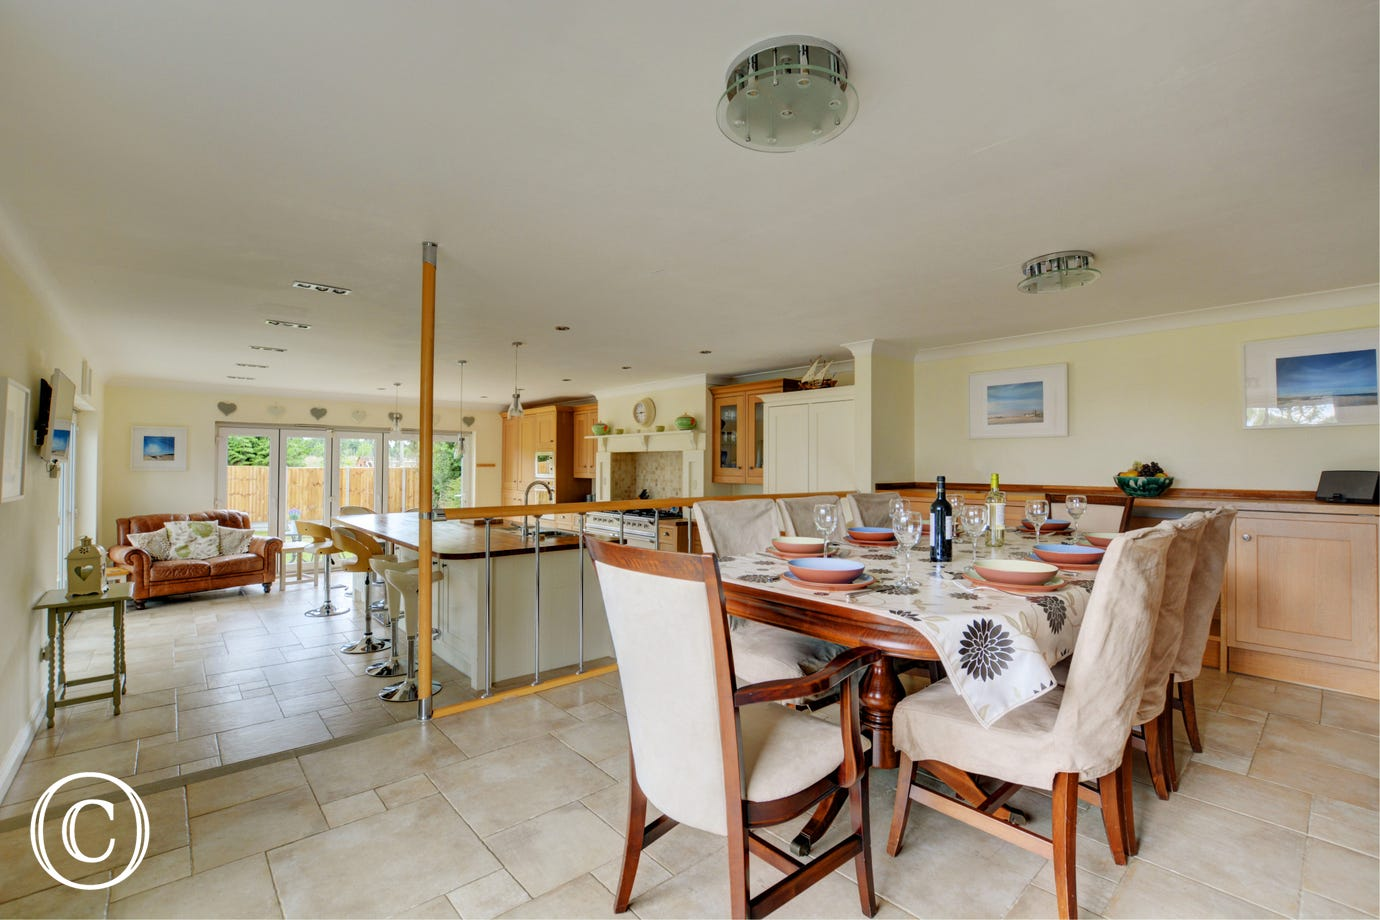 Light and airy open plan kitchen and dining area with table  and chairs